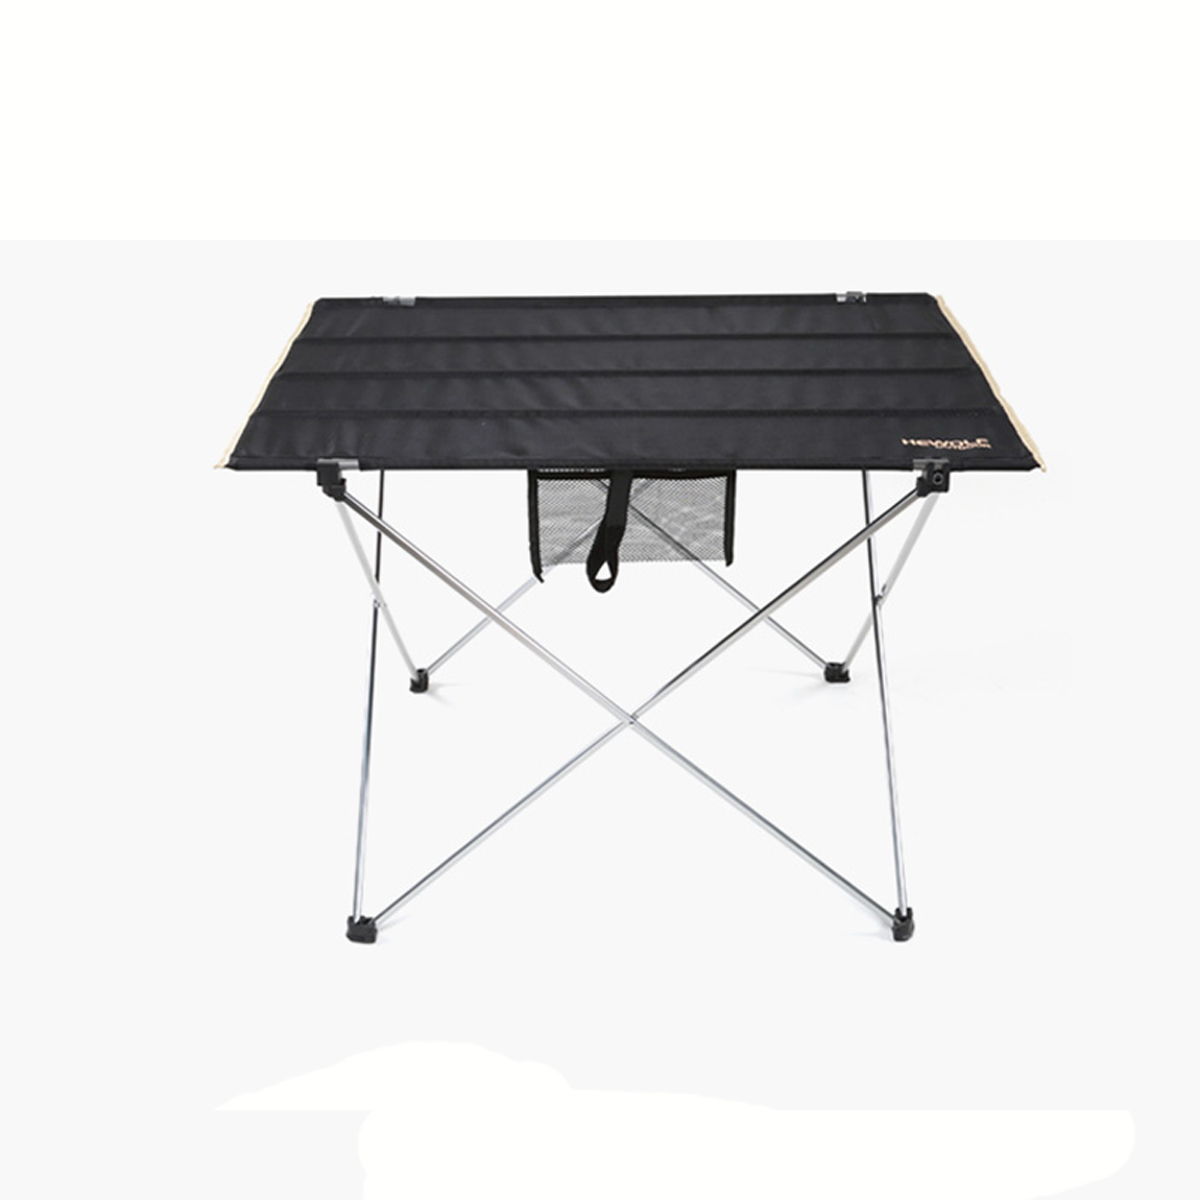 ULTRALIGHT PORTABLE ALUMINUM Alloy Foldable Tables Oxford